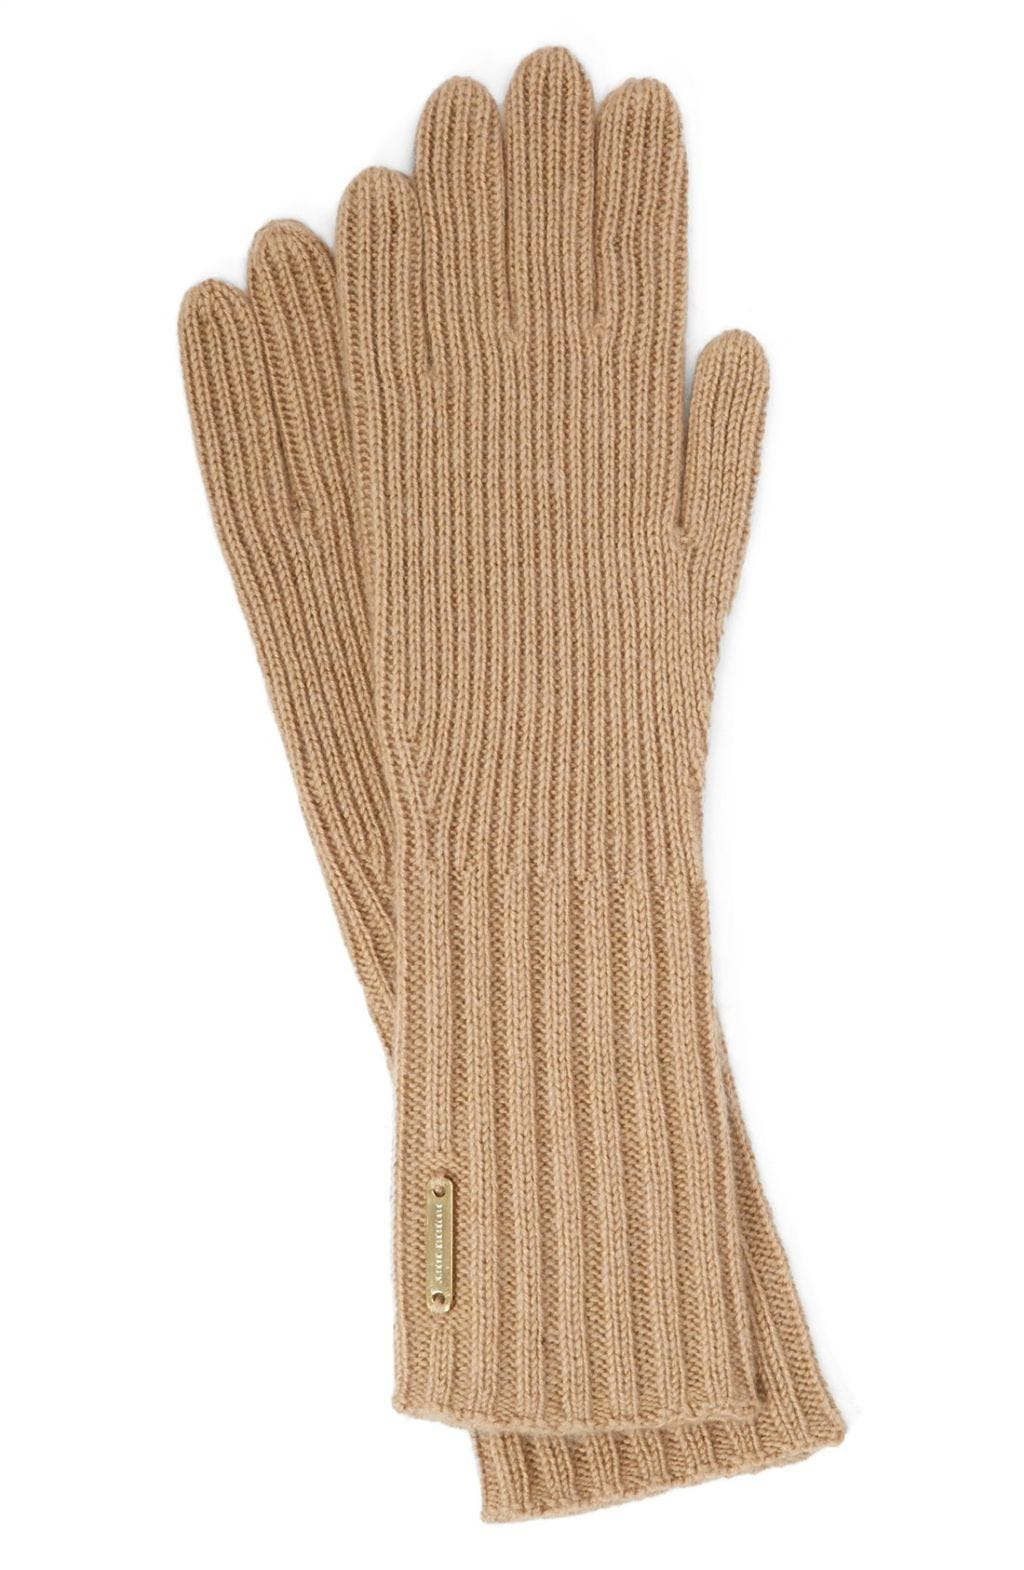 "Burberry Cashmere Blend Touch Tech Knit Gloves, $195; <a href=""http://shop.nordstrom.com/s/burberry-cashmere-blend-touch-tech-knit-gloves/3565105?cm_cat=datafeed&amp;cm_ite=burberry_cashmere_blend_touch_tech_knit_gloves:939911&amp;cm_pla=women:gloves_mittens:gloves&amp;cm_ven=polyvorecpc&amp;mr:referralID=2770cb18-9ab6-11e4-ac6c-001b2166c2c0"">nordstrom.com&nbsp;&nbsp;</a>  <!--EndFragment-->"